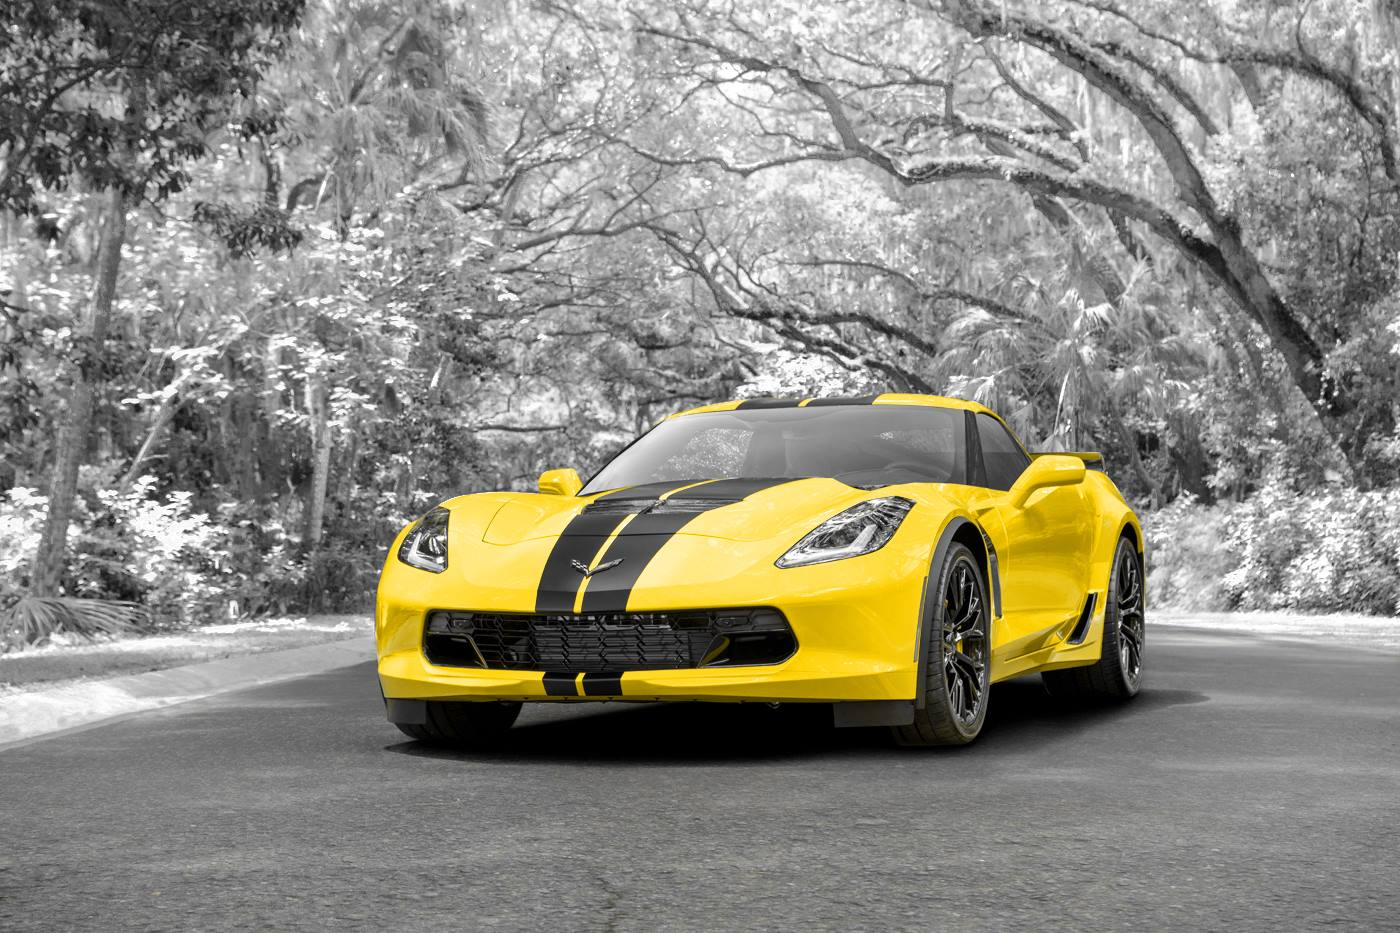 Envie de louer une Corvette Z06 Hertz ? - Photo n°1